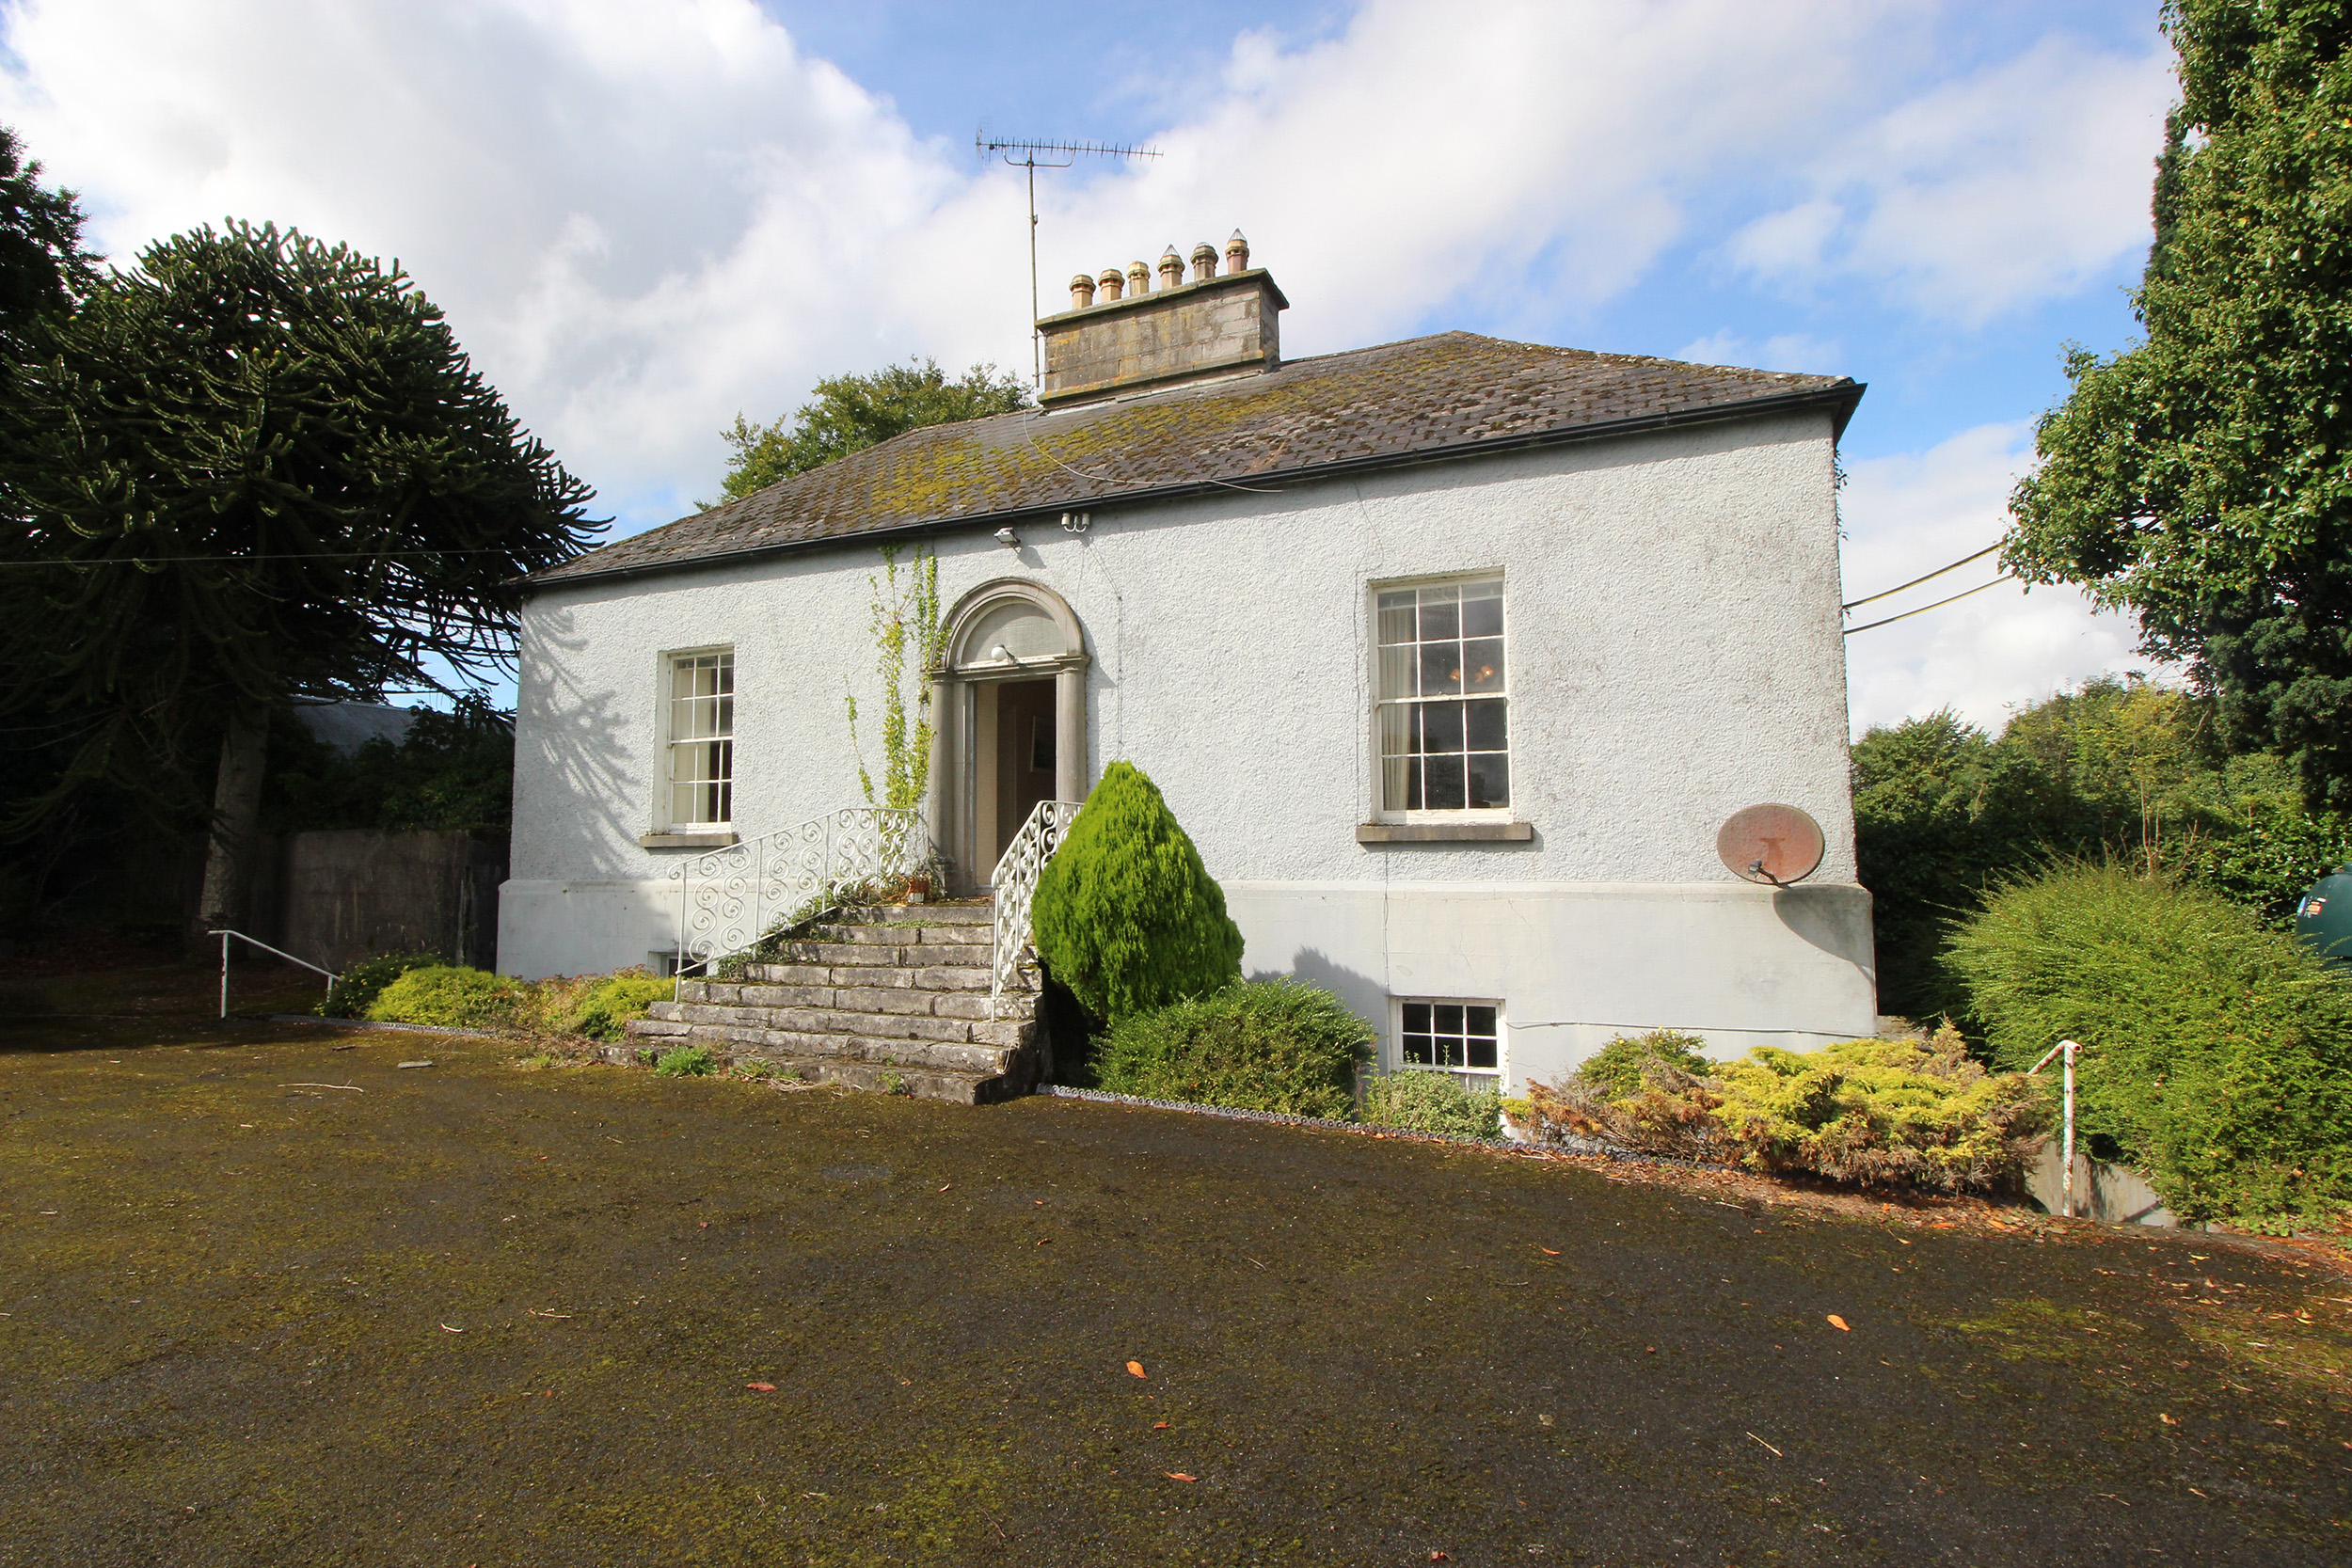 166ac residential farm sells in two lots for over €1.9m